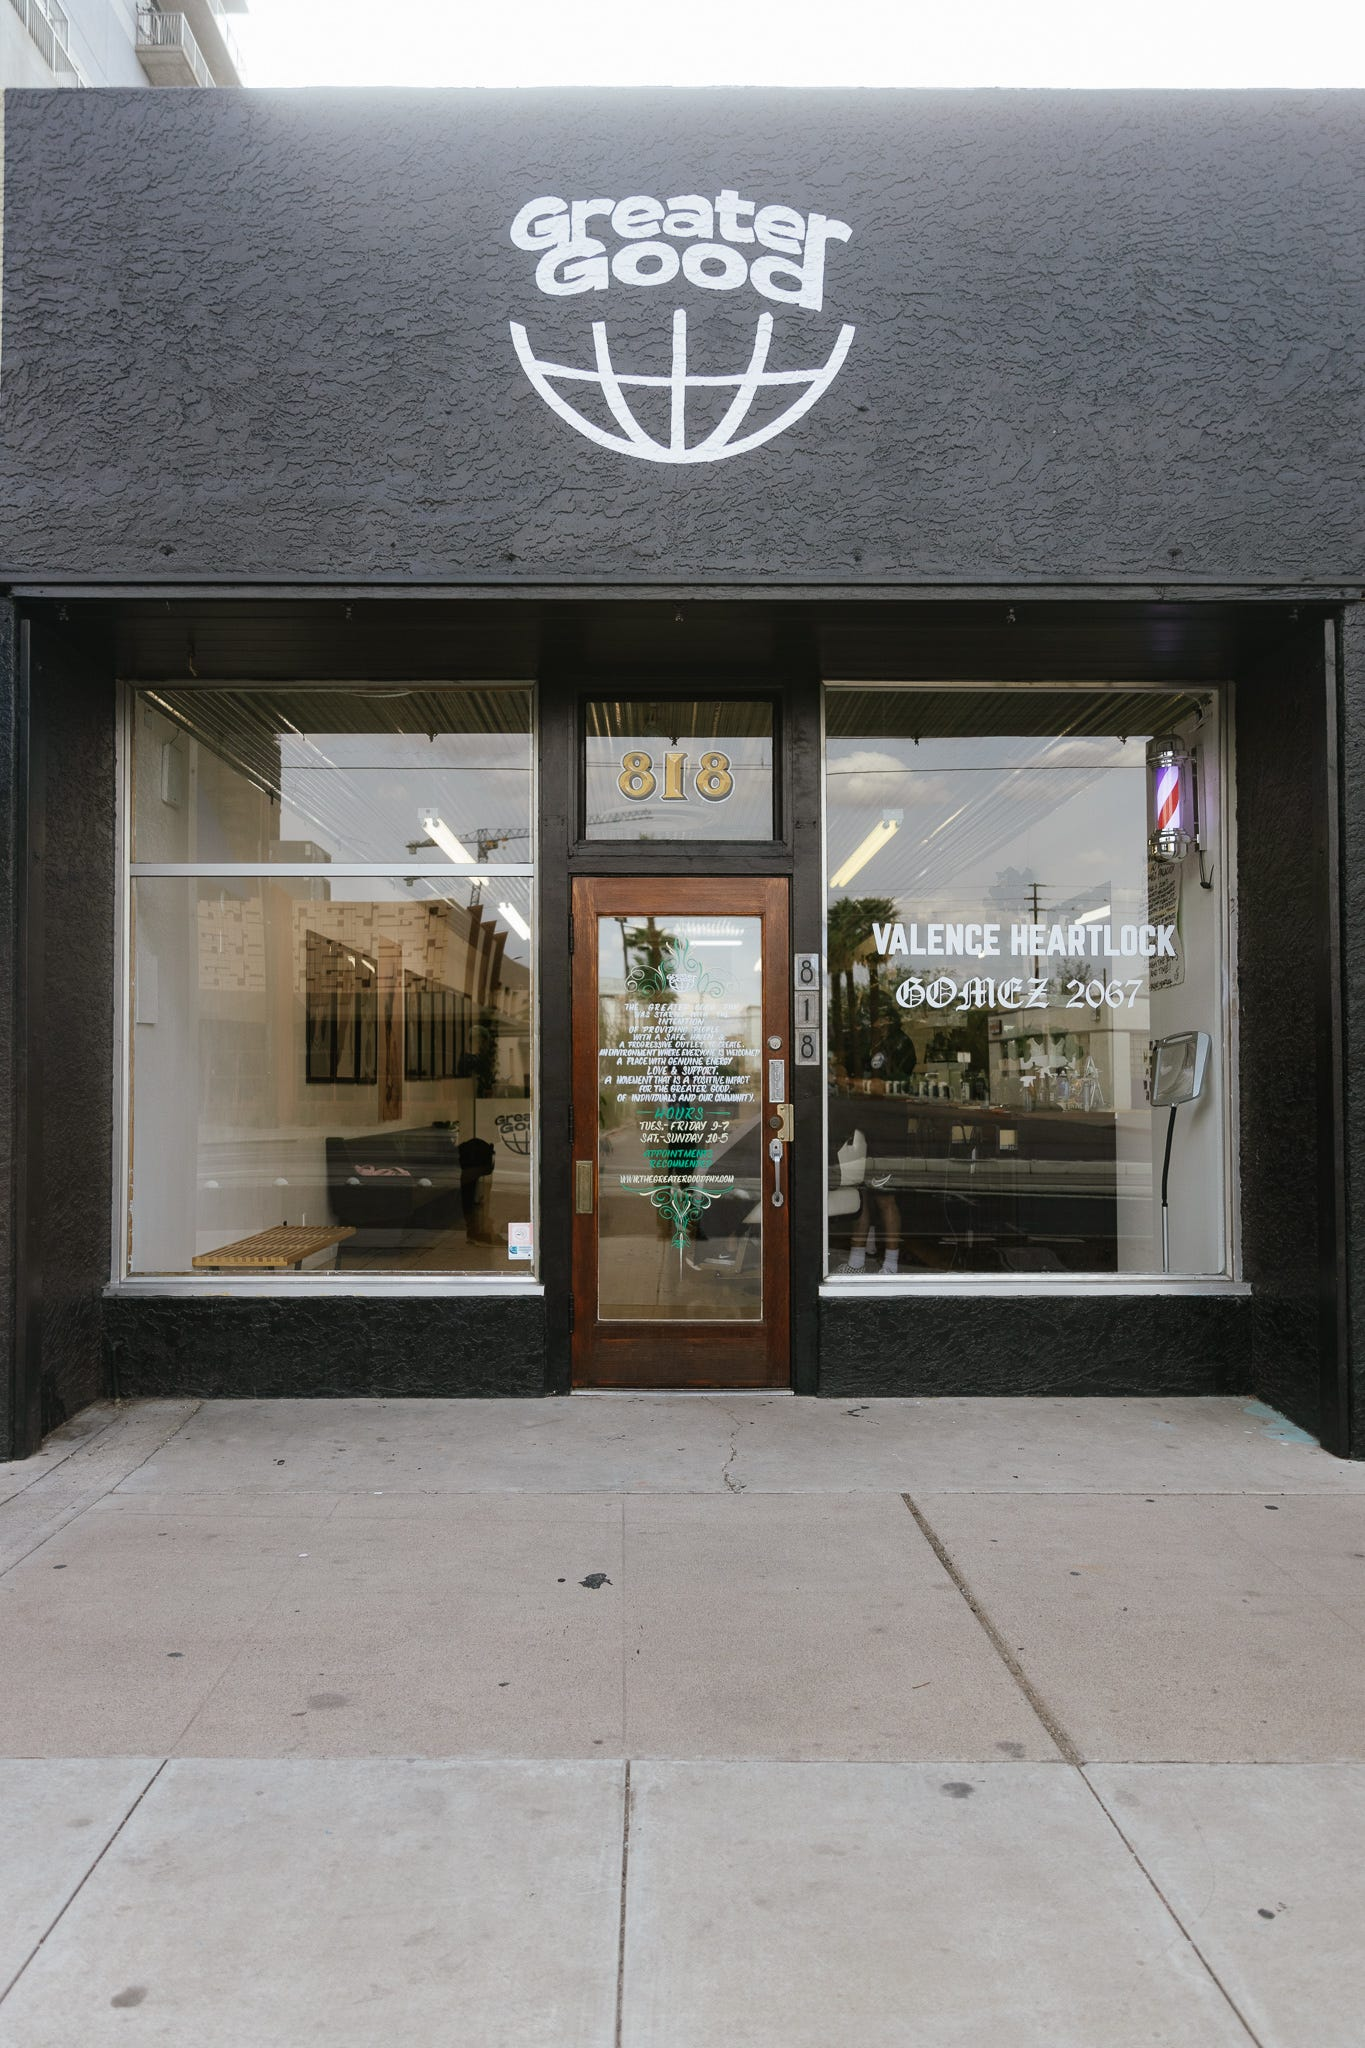 The Greater Good is located off Central Avenue near Roosevelt Row. The shop has been open now for more than a year.